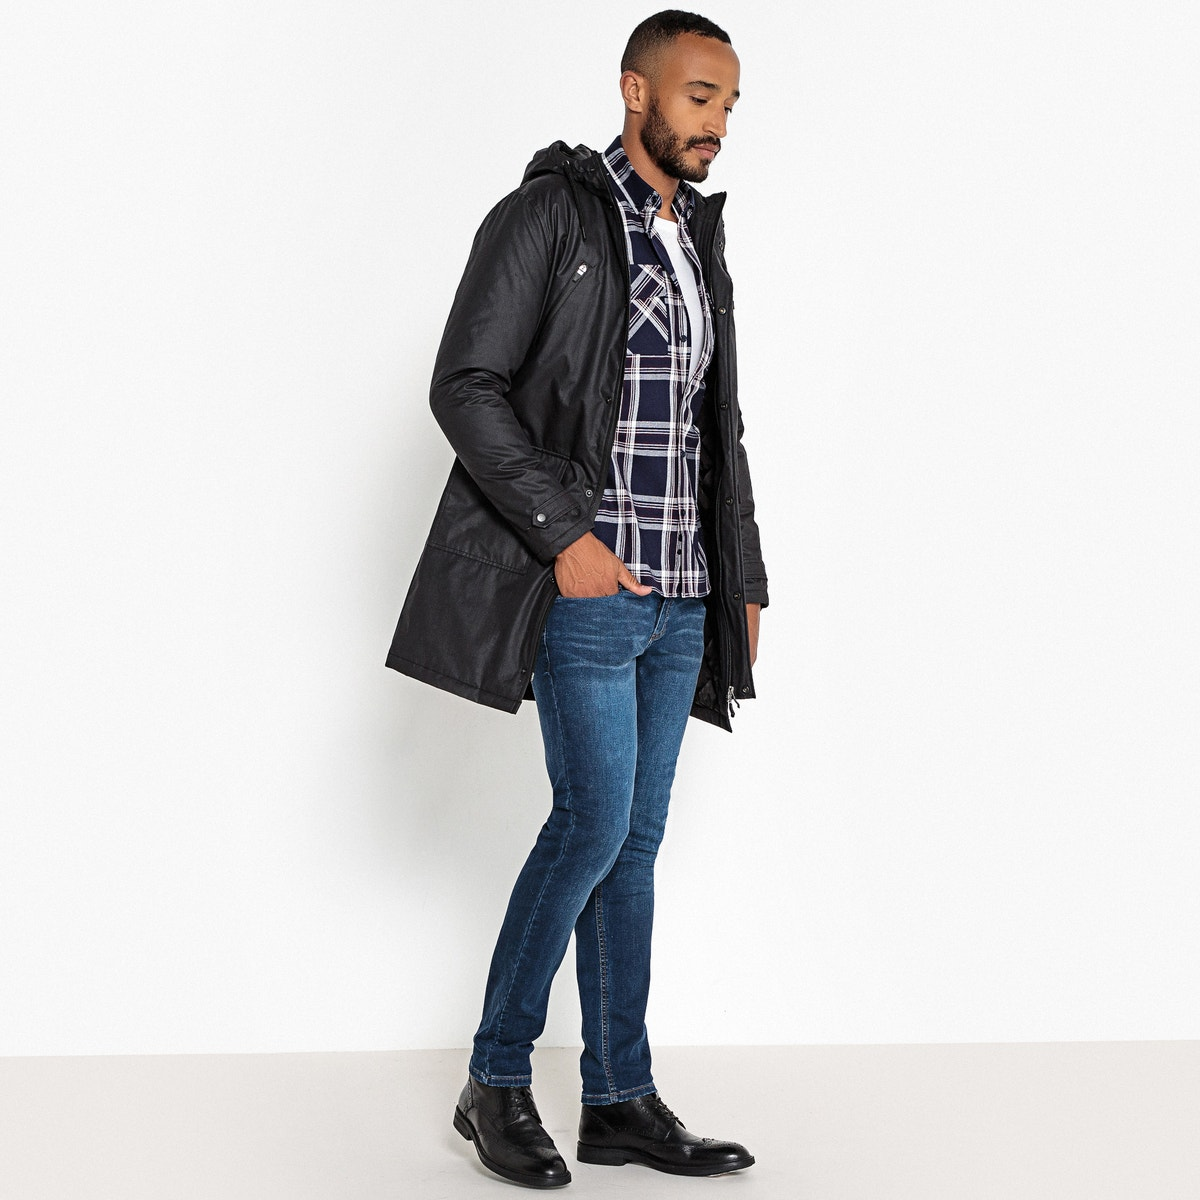 lange met Collections Mid Mens parka La ritssluiting Redoute stijlvolle fgy6vYb7